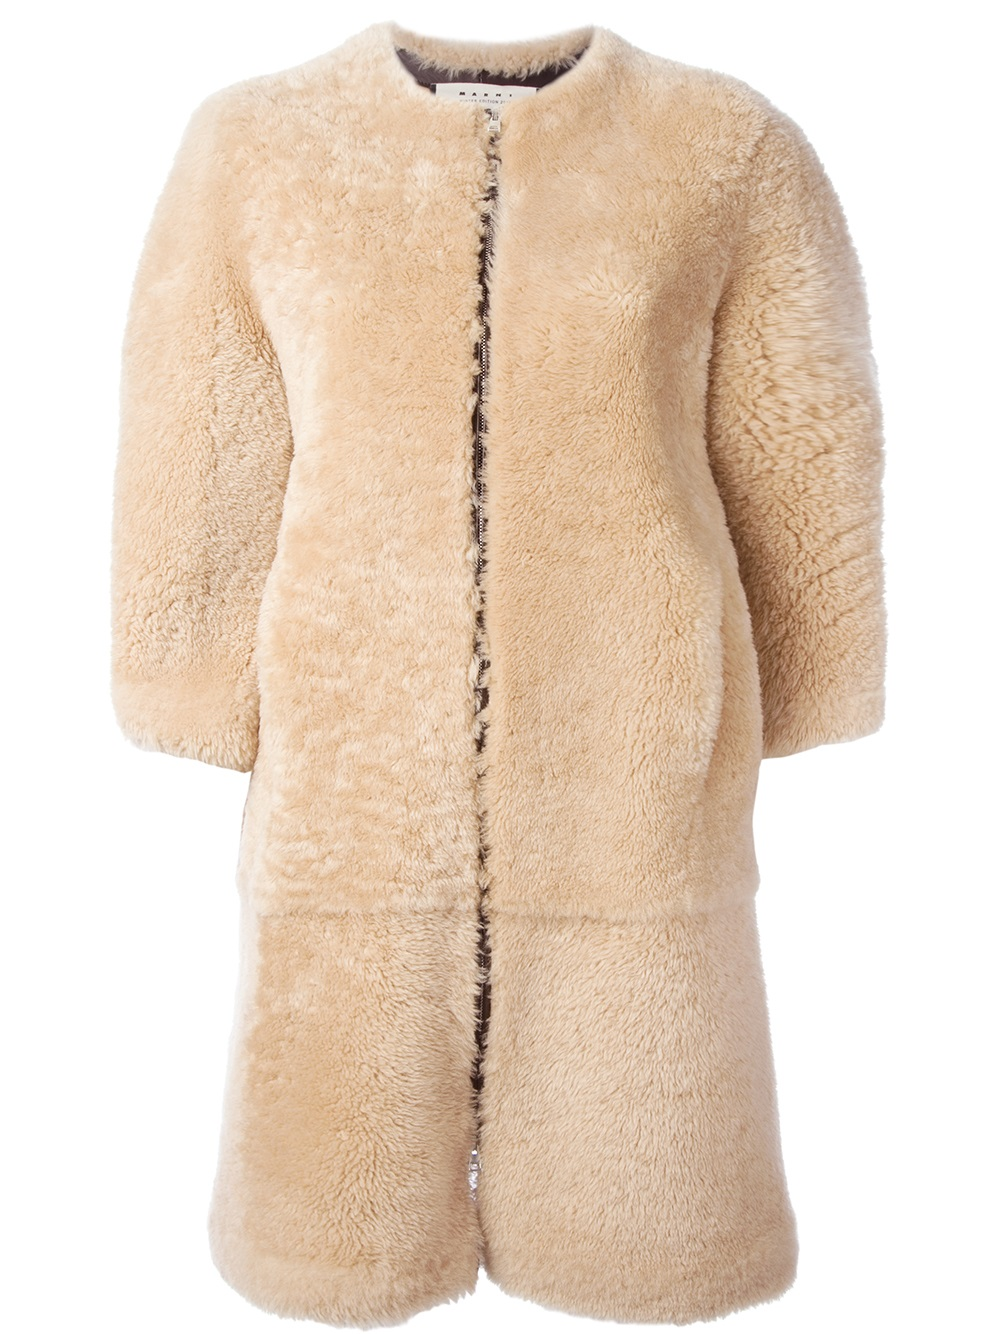 Marni Lamb Fur Coat in Natural | Lyst